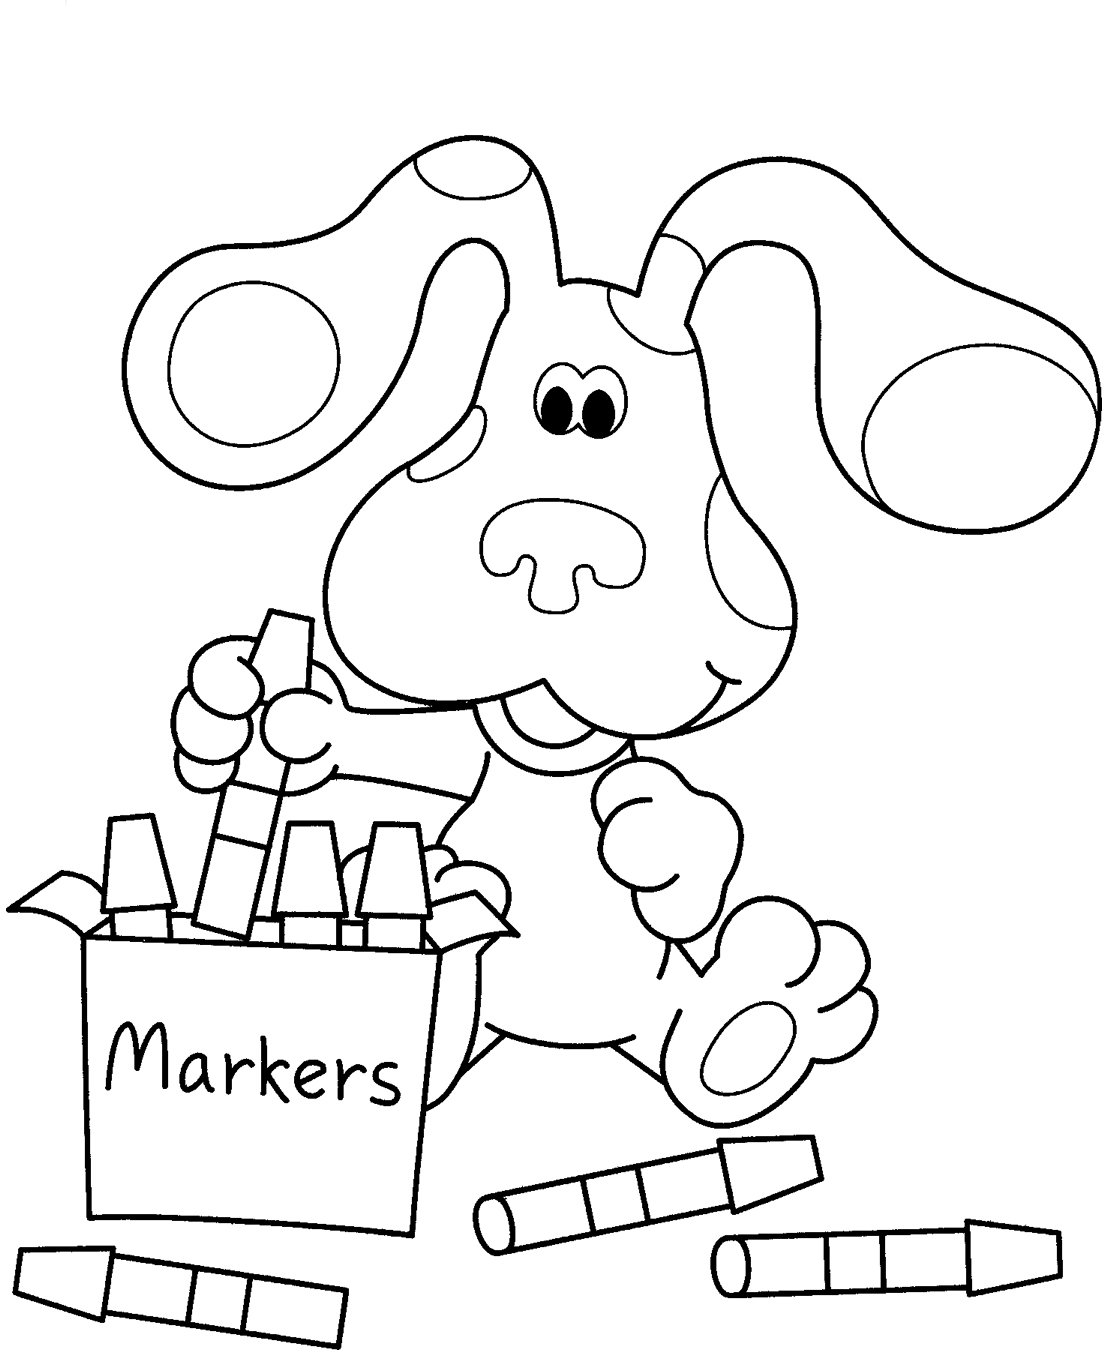 Printable Blues Clues Coloring Pages Kids